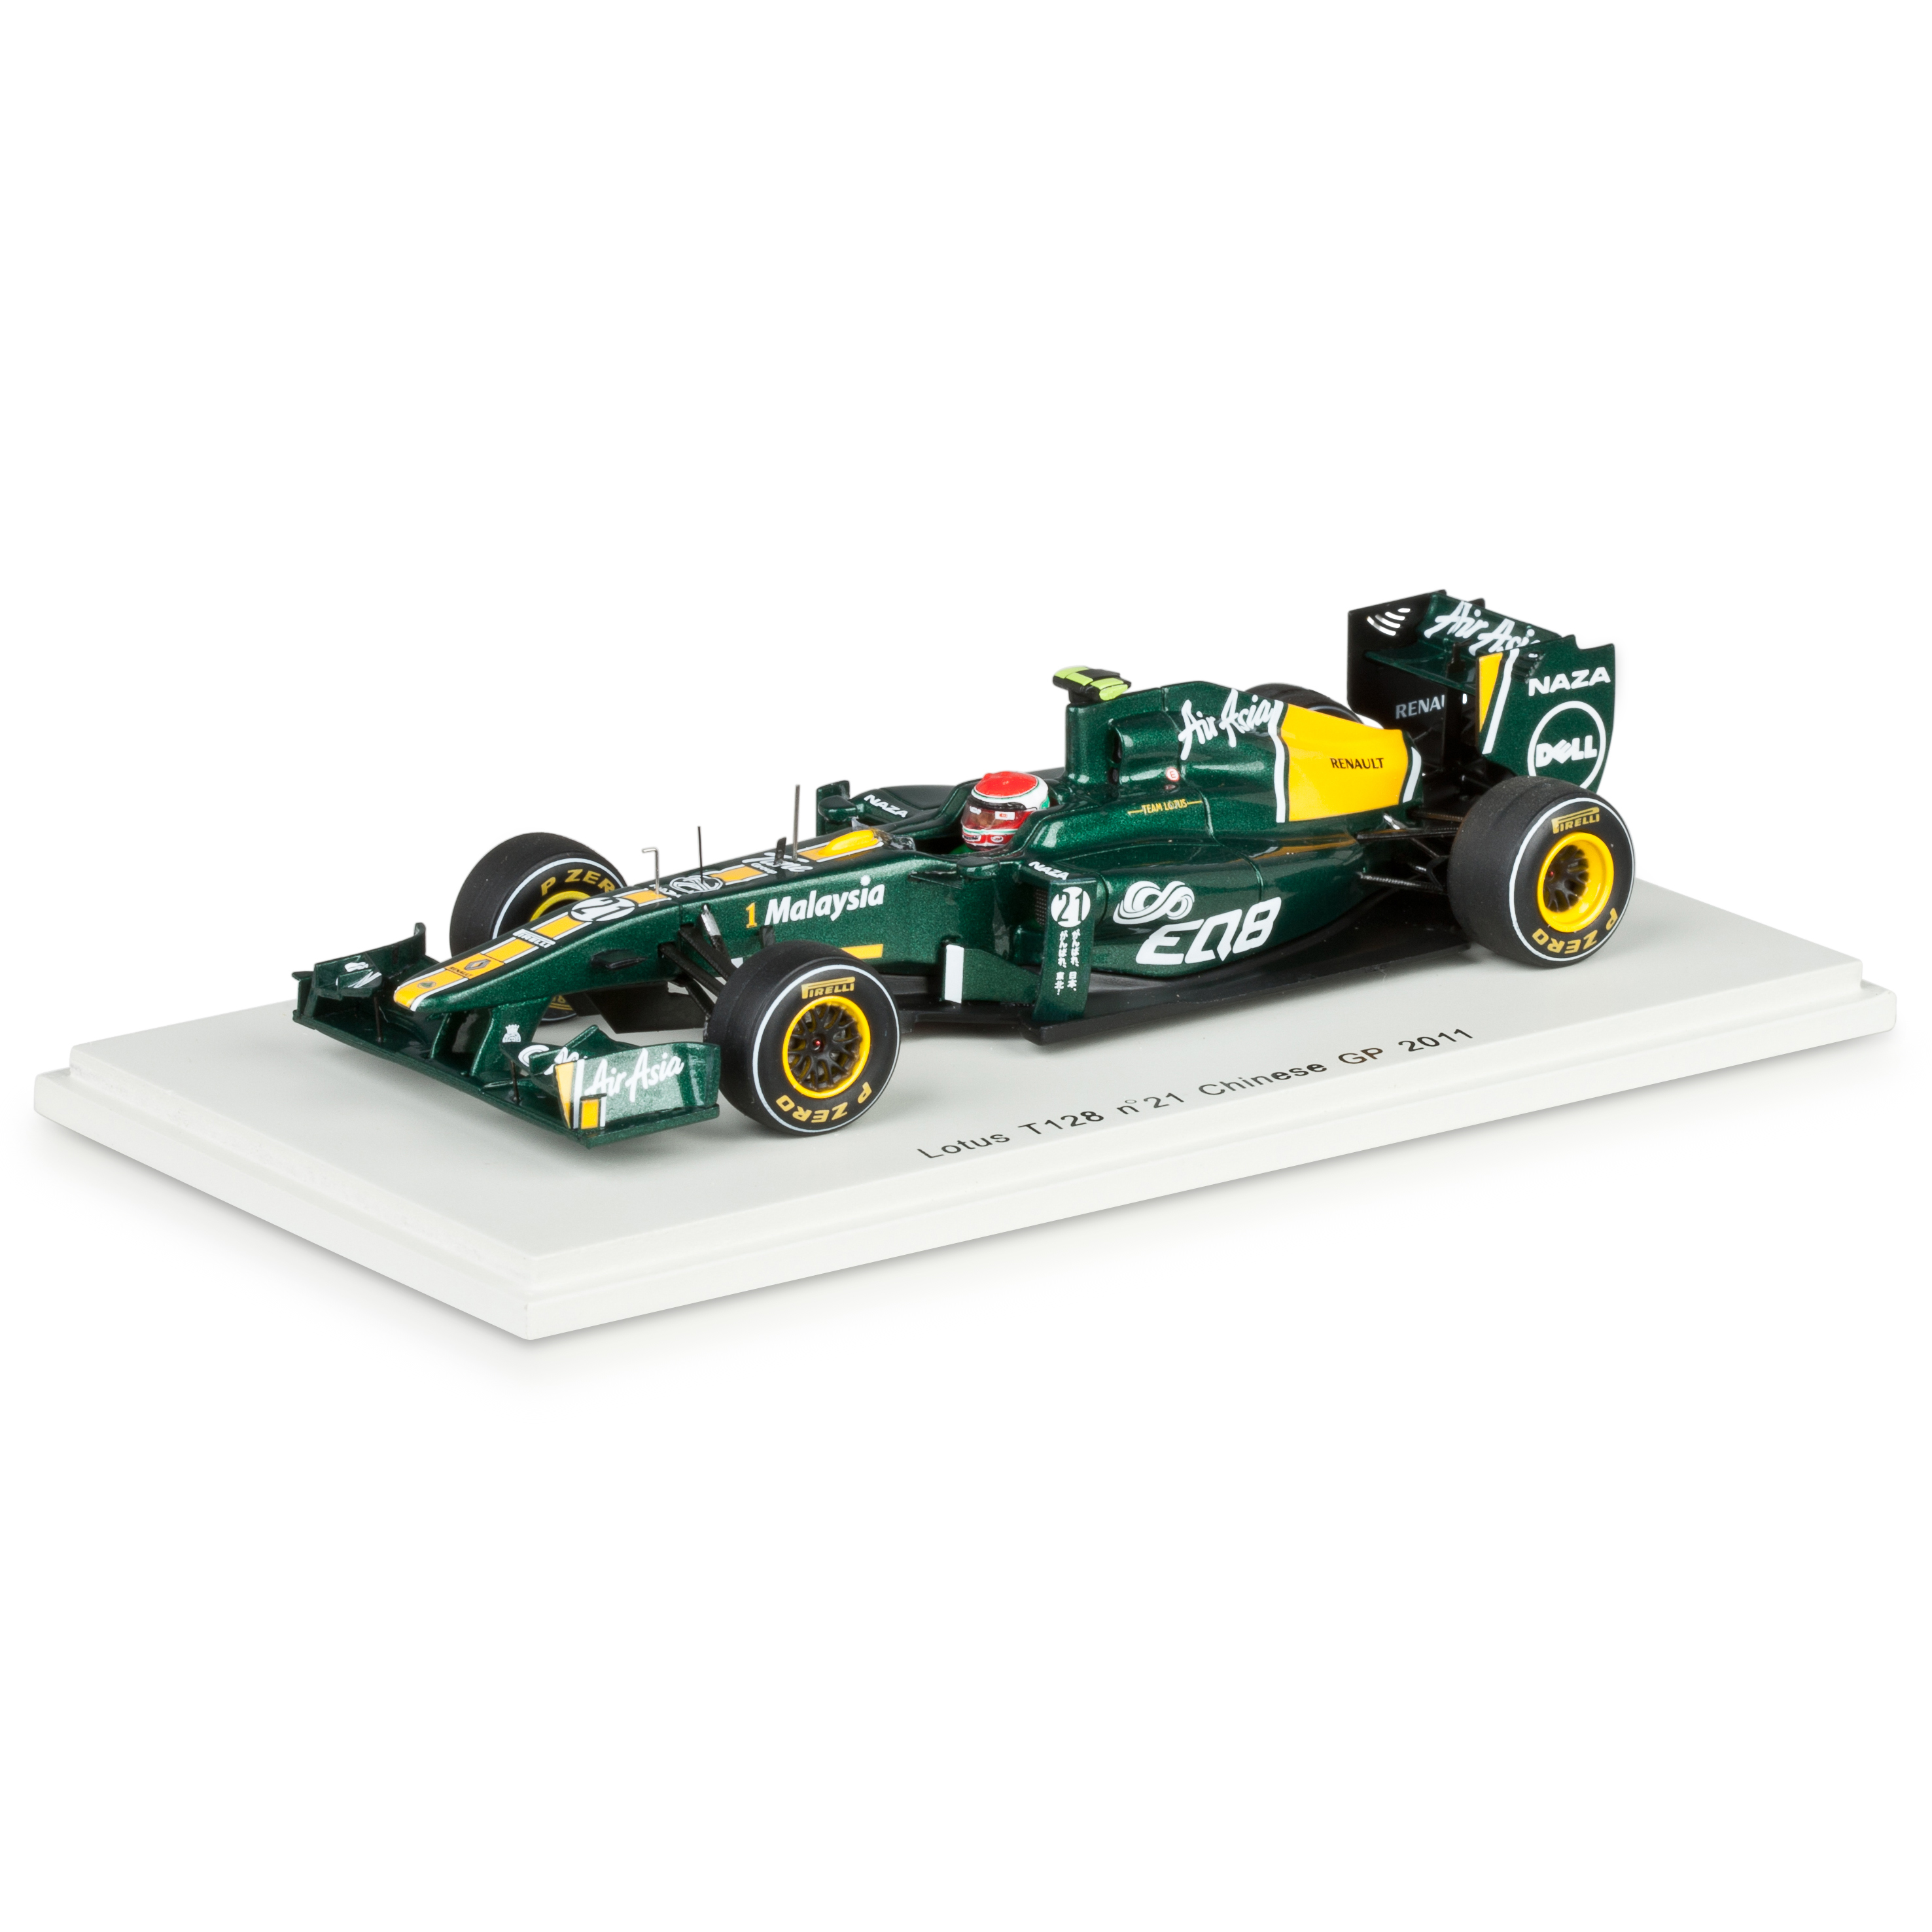 Lotus T128 2011 J.Trulli No.21 1:43 Scale